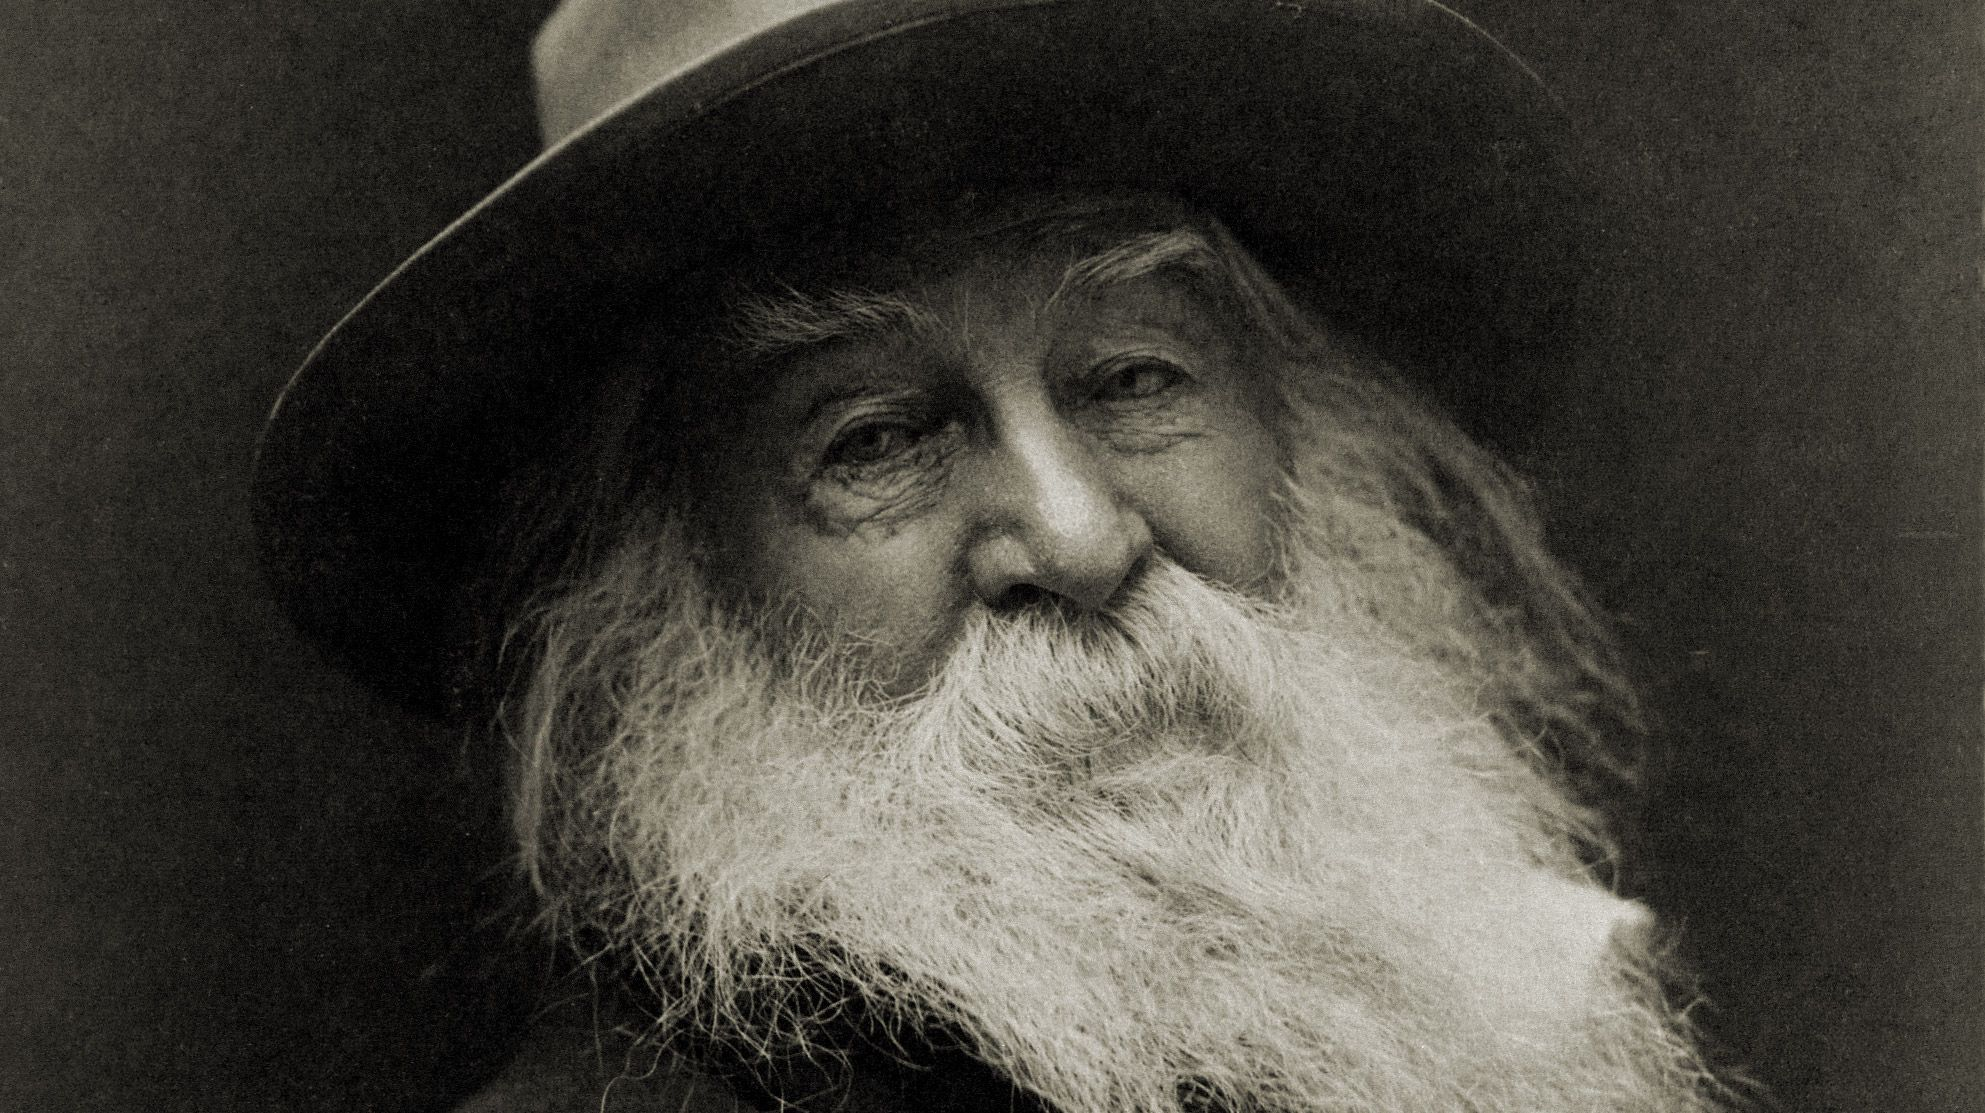 The Library of Congress Needs Help Transcribing Walt Whitman's Poems and Letters